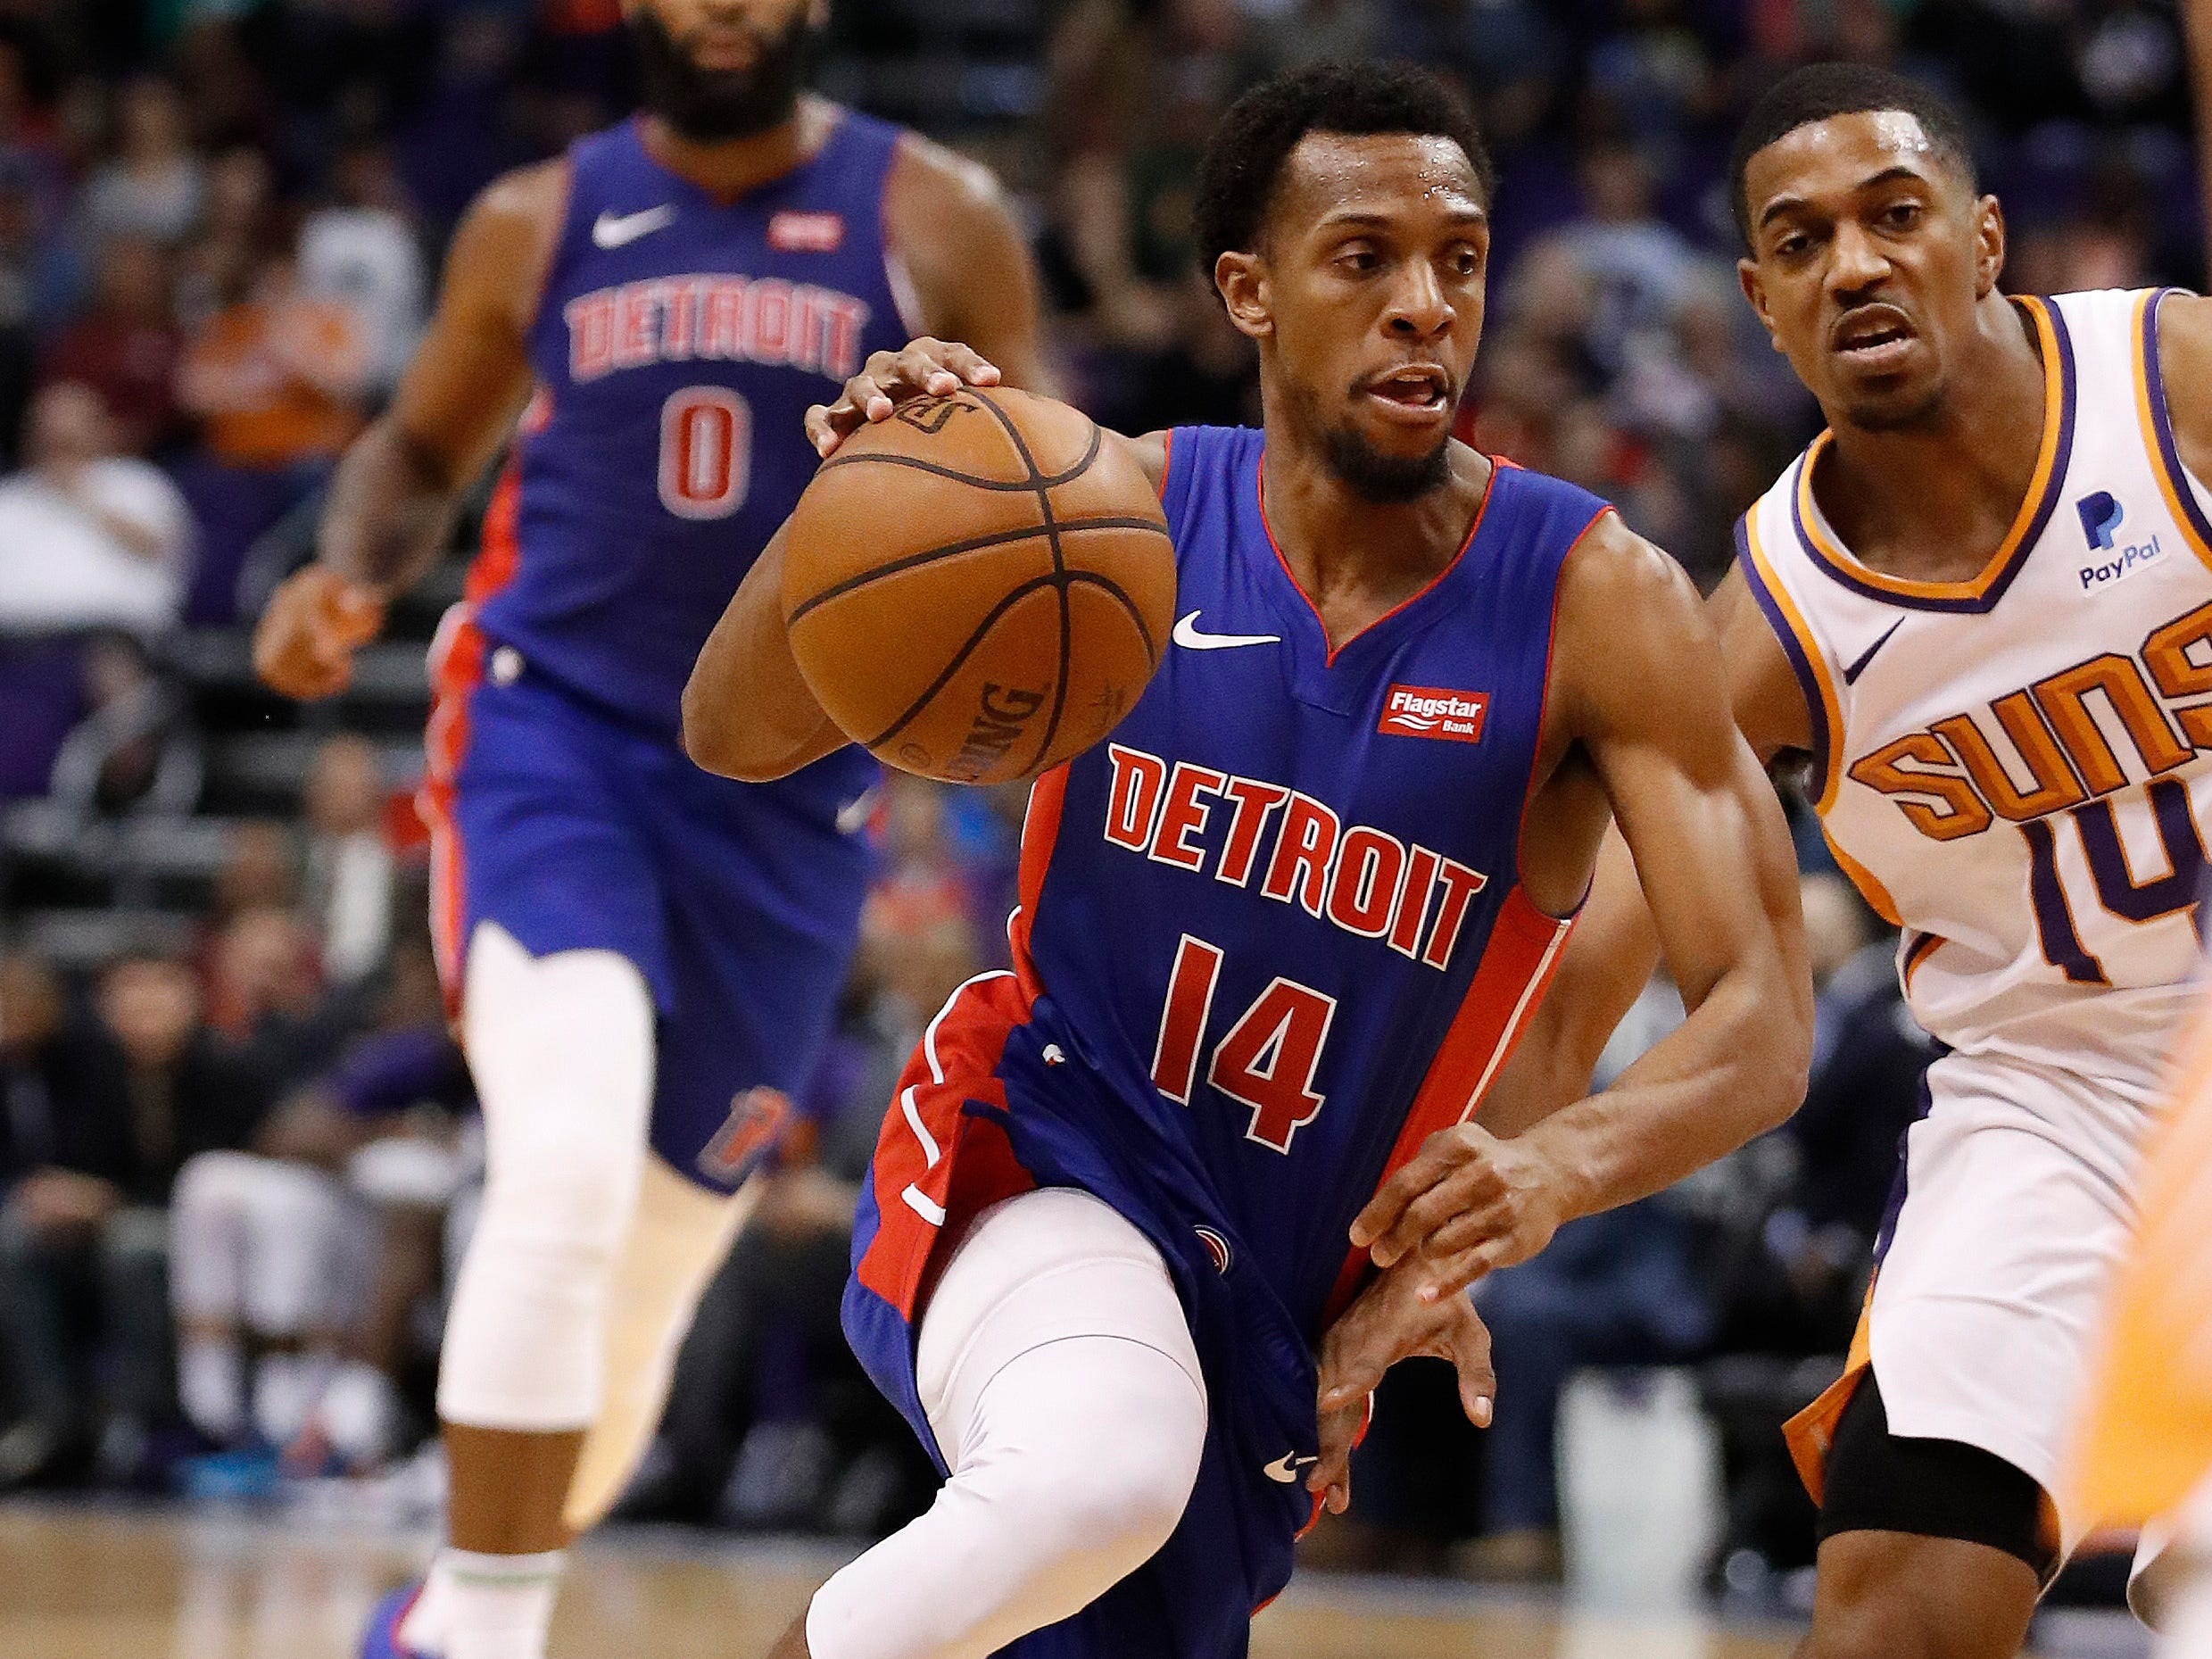 Detroit Pistons guard Ish Smith (14) drives against Phoenix Suns guard De'Anthony Melton (14) during the first half of an NBA basketball game, Thursday, March 21, 2019, in Phoenix.